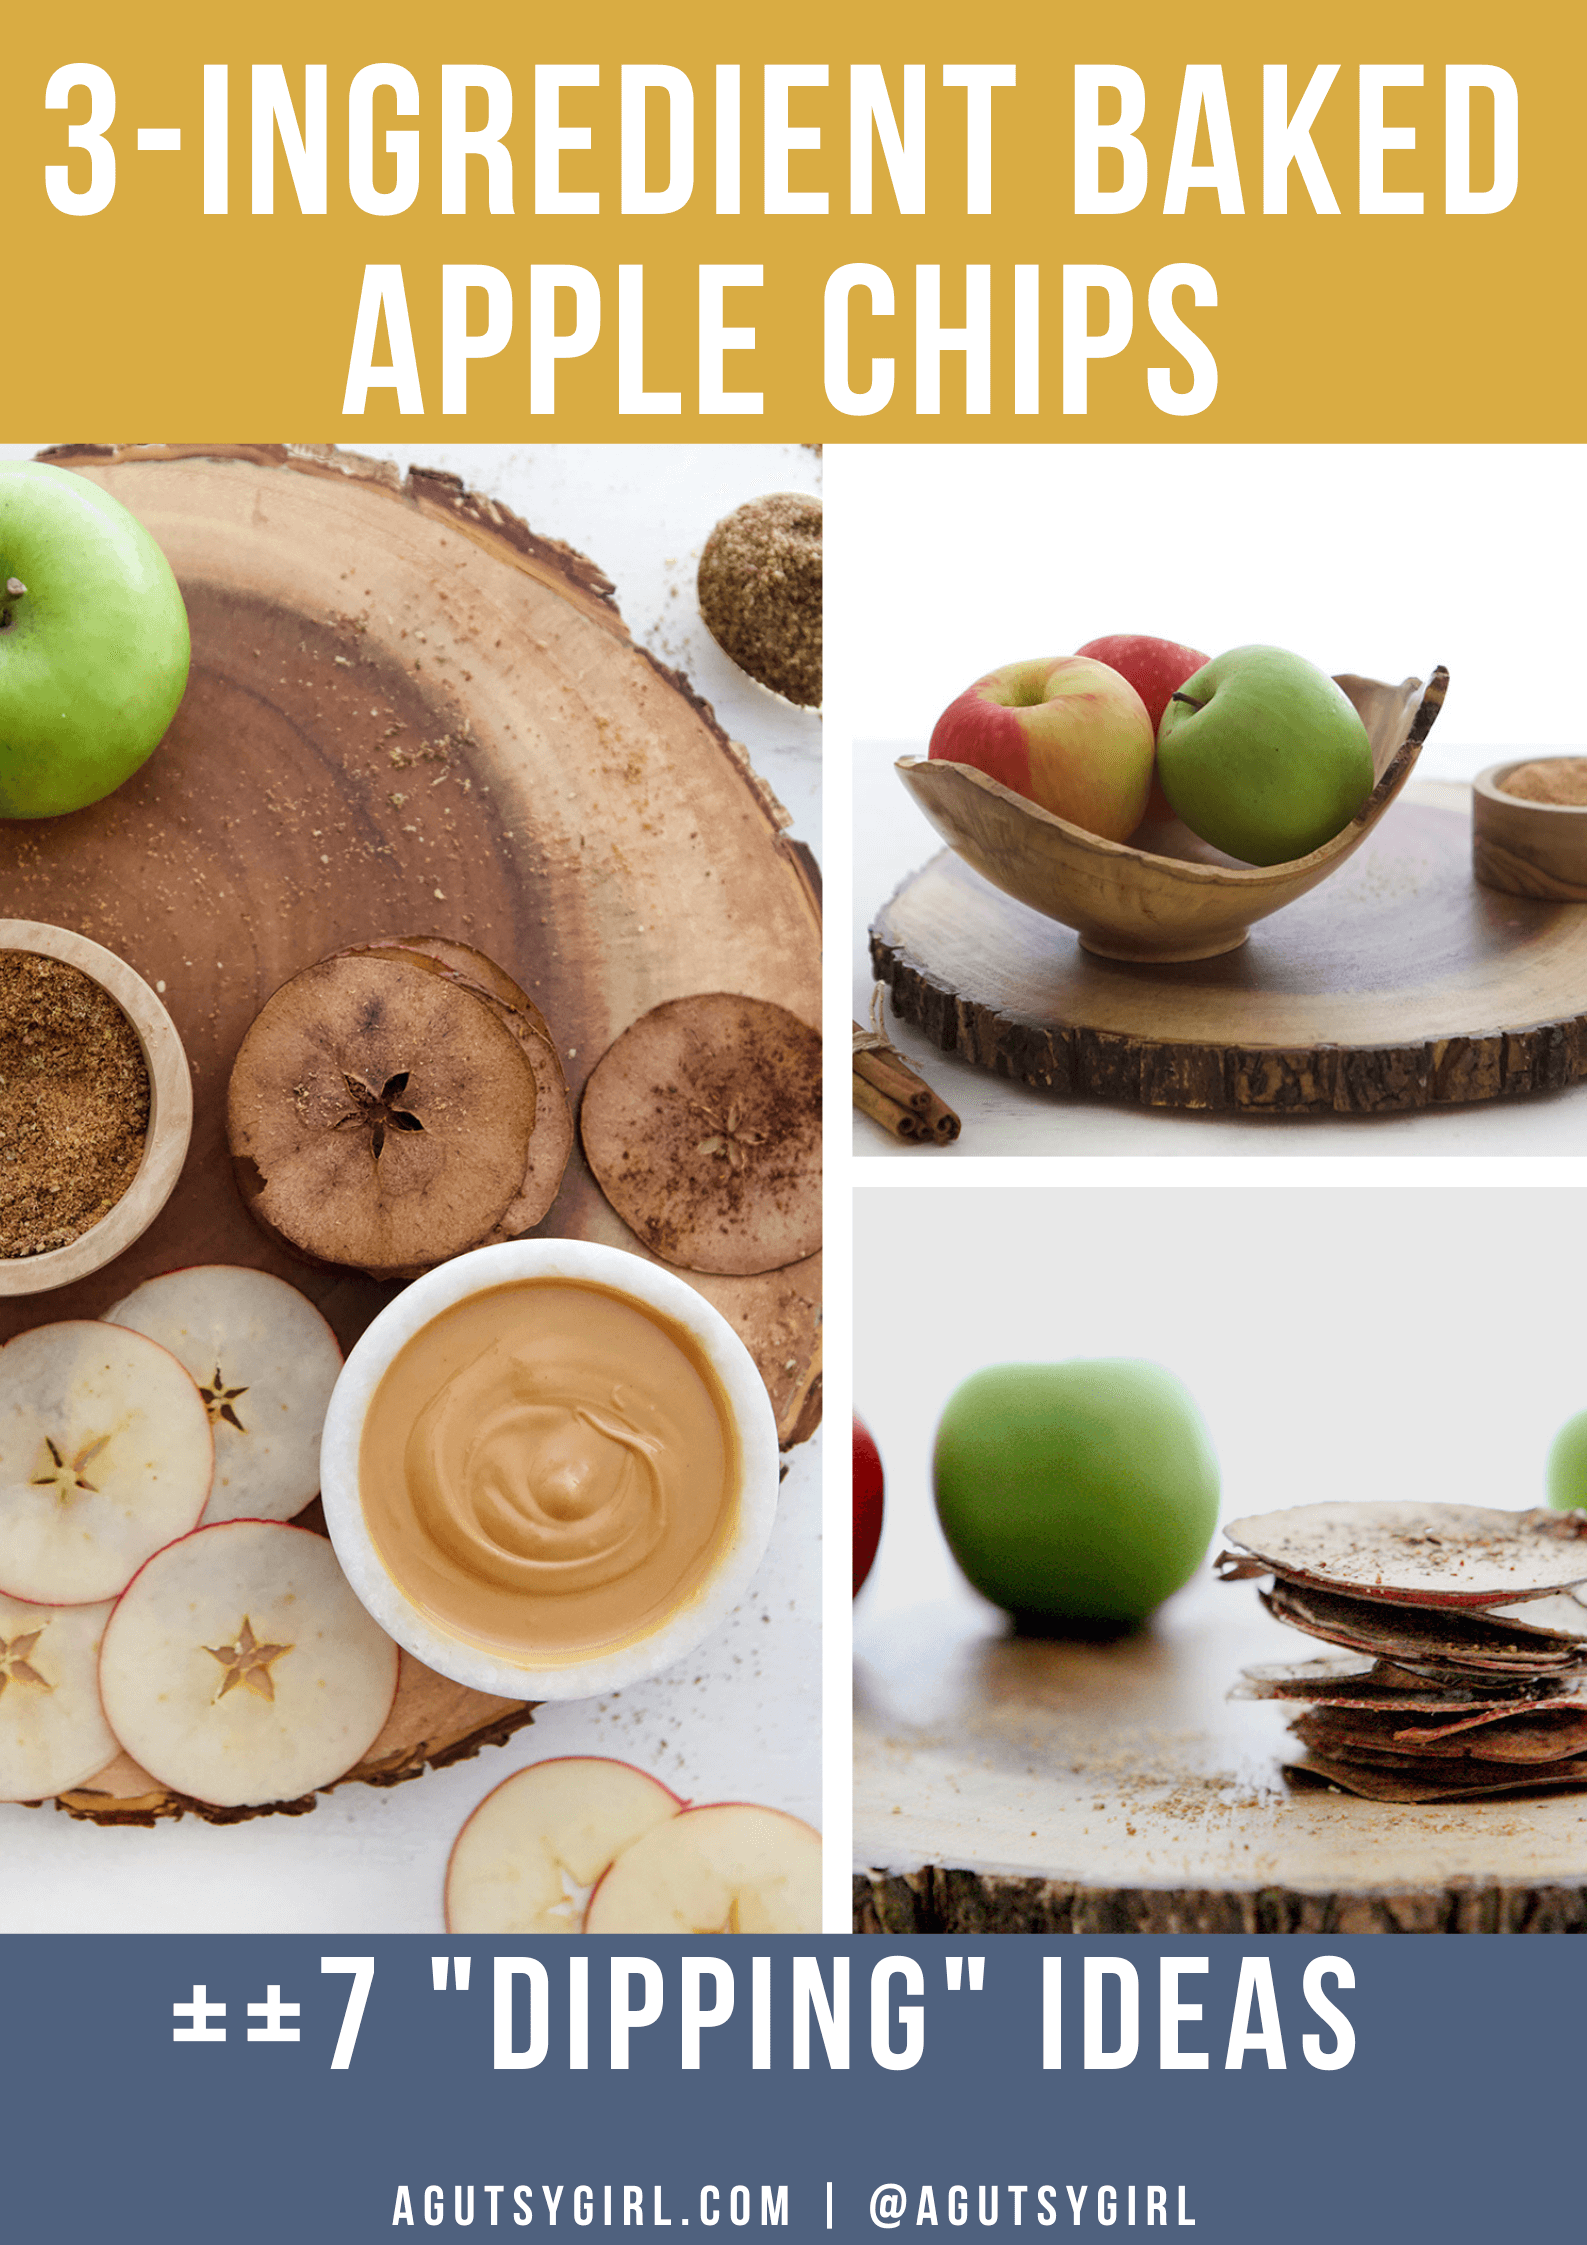 3-Ingredient Baked Apple Chips agutsygirl.com #applechips #glutenfreerecipes #apples